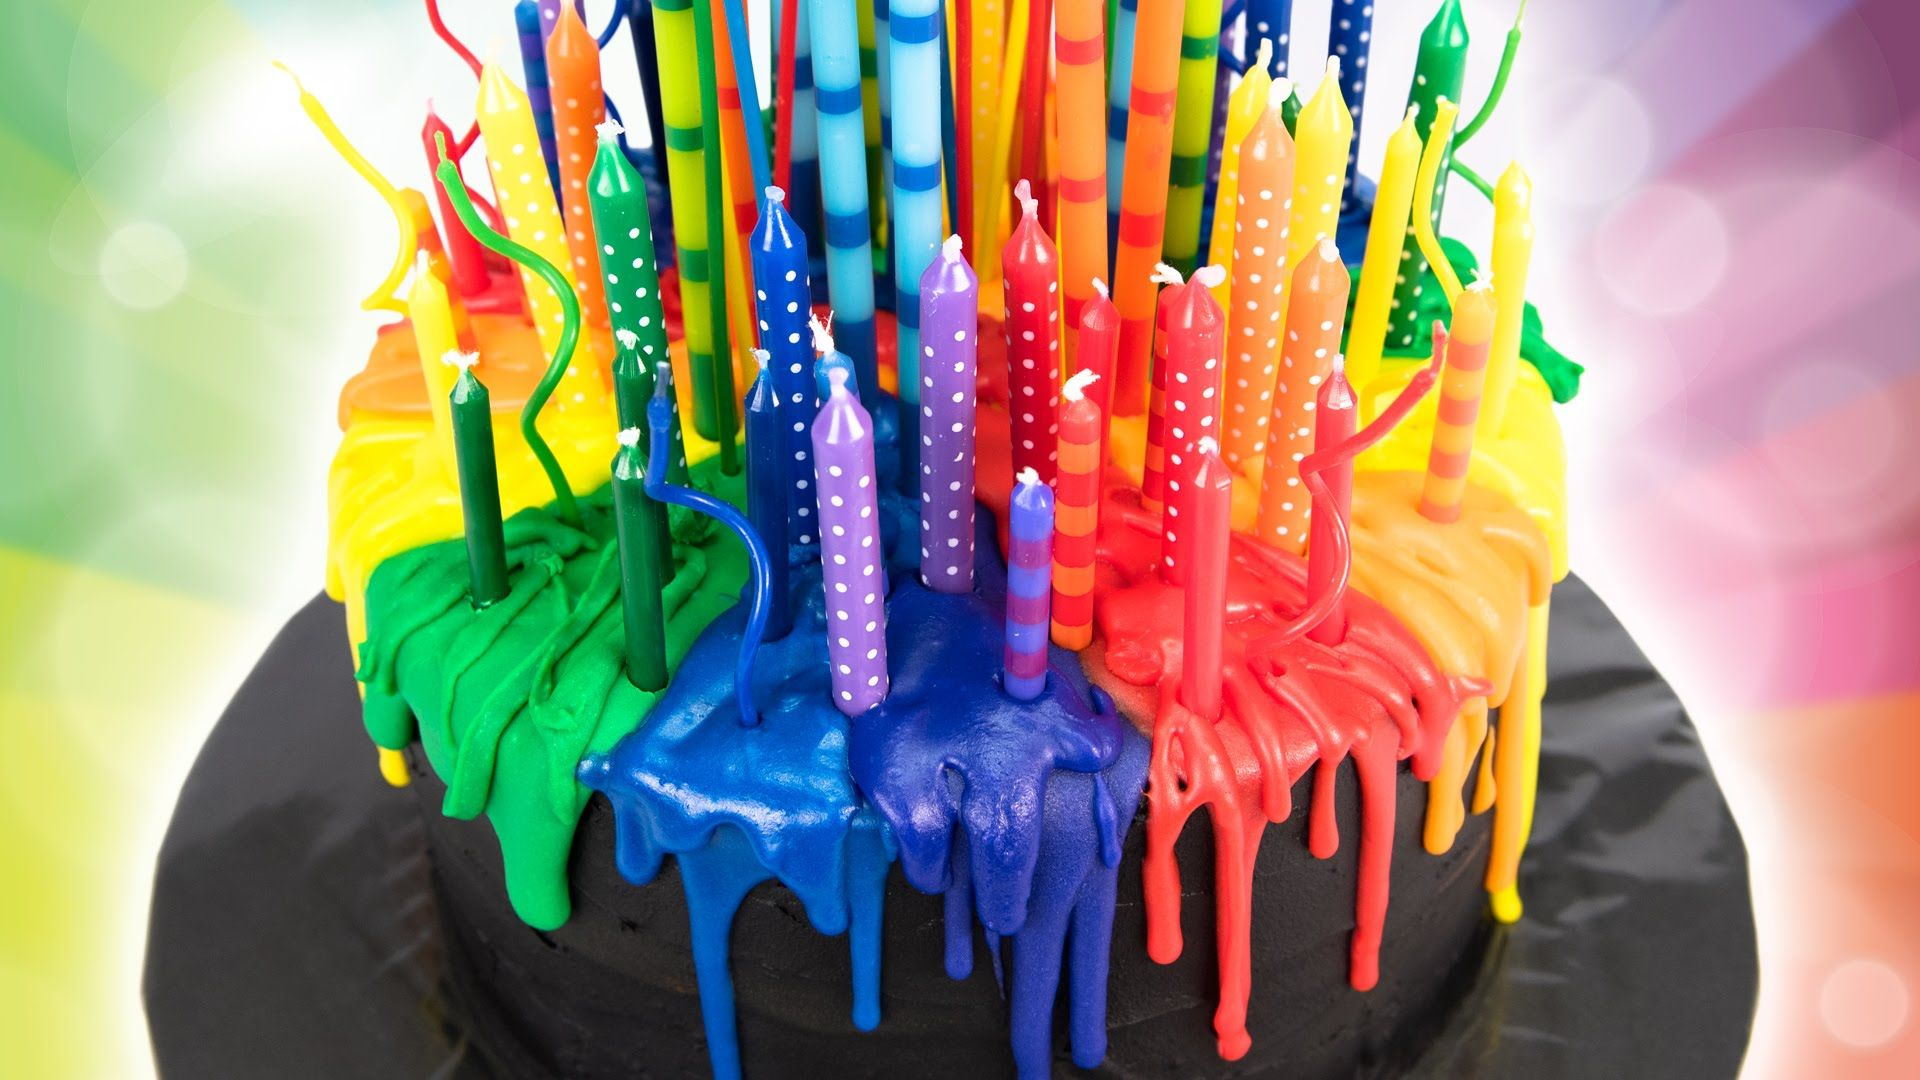 Read the blog post here httpcookiescupcakesandcardiop melting candle rainbow cake birthday cake from cookies cupcakes and ca i really want to try this but im not so fantastically sure about the number of sciox Image collections